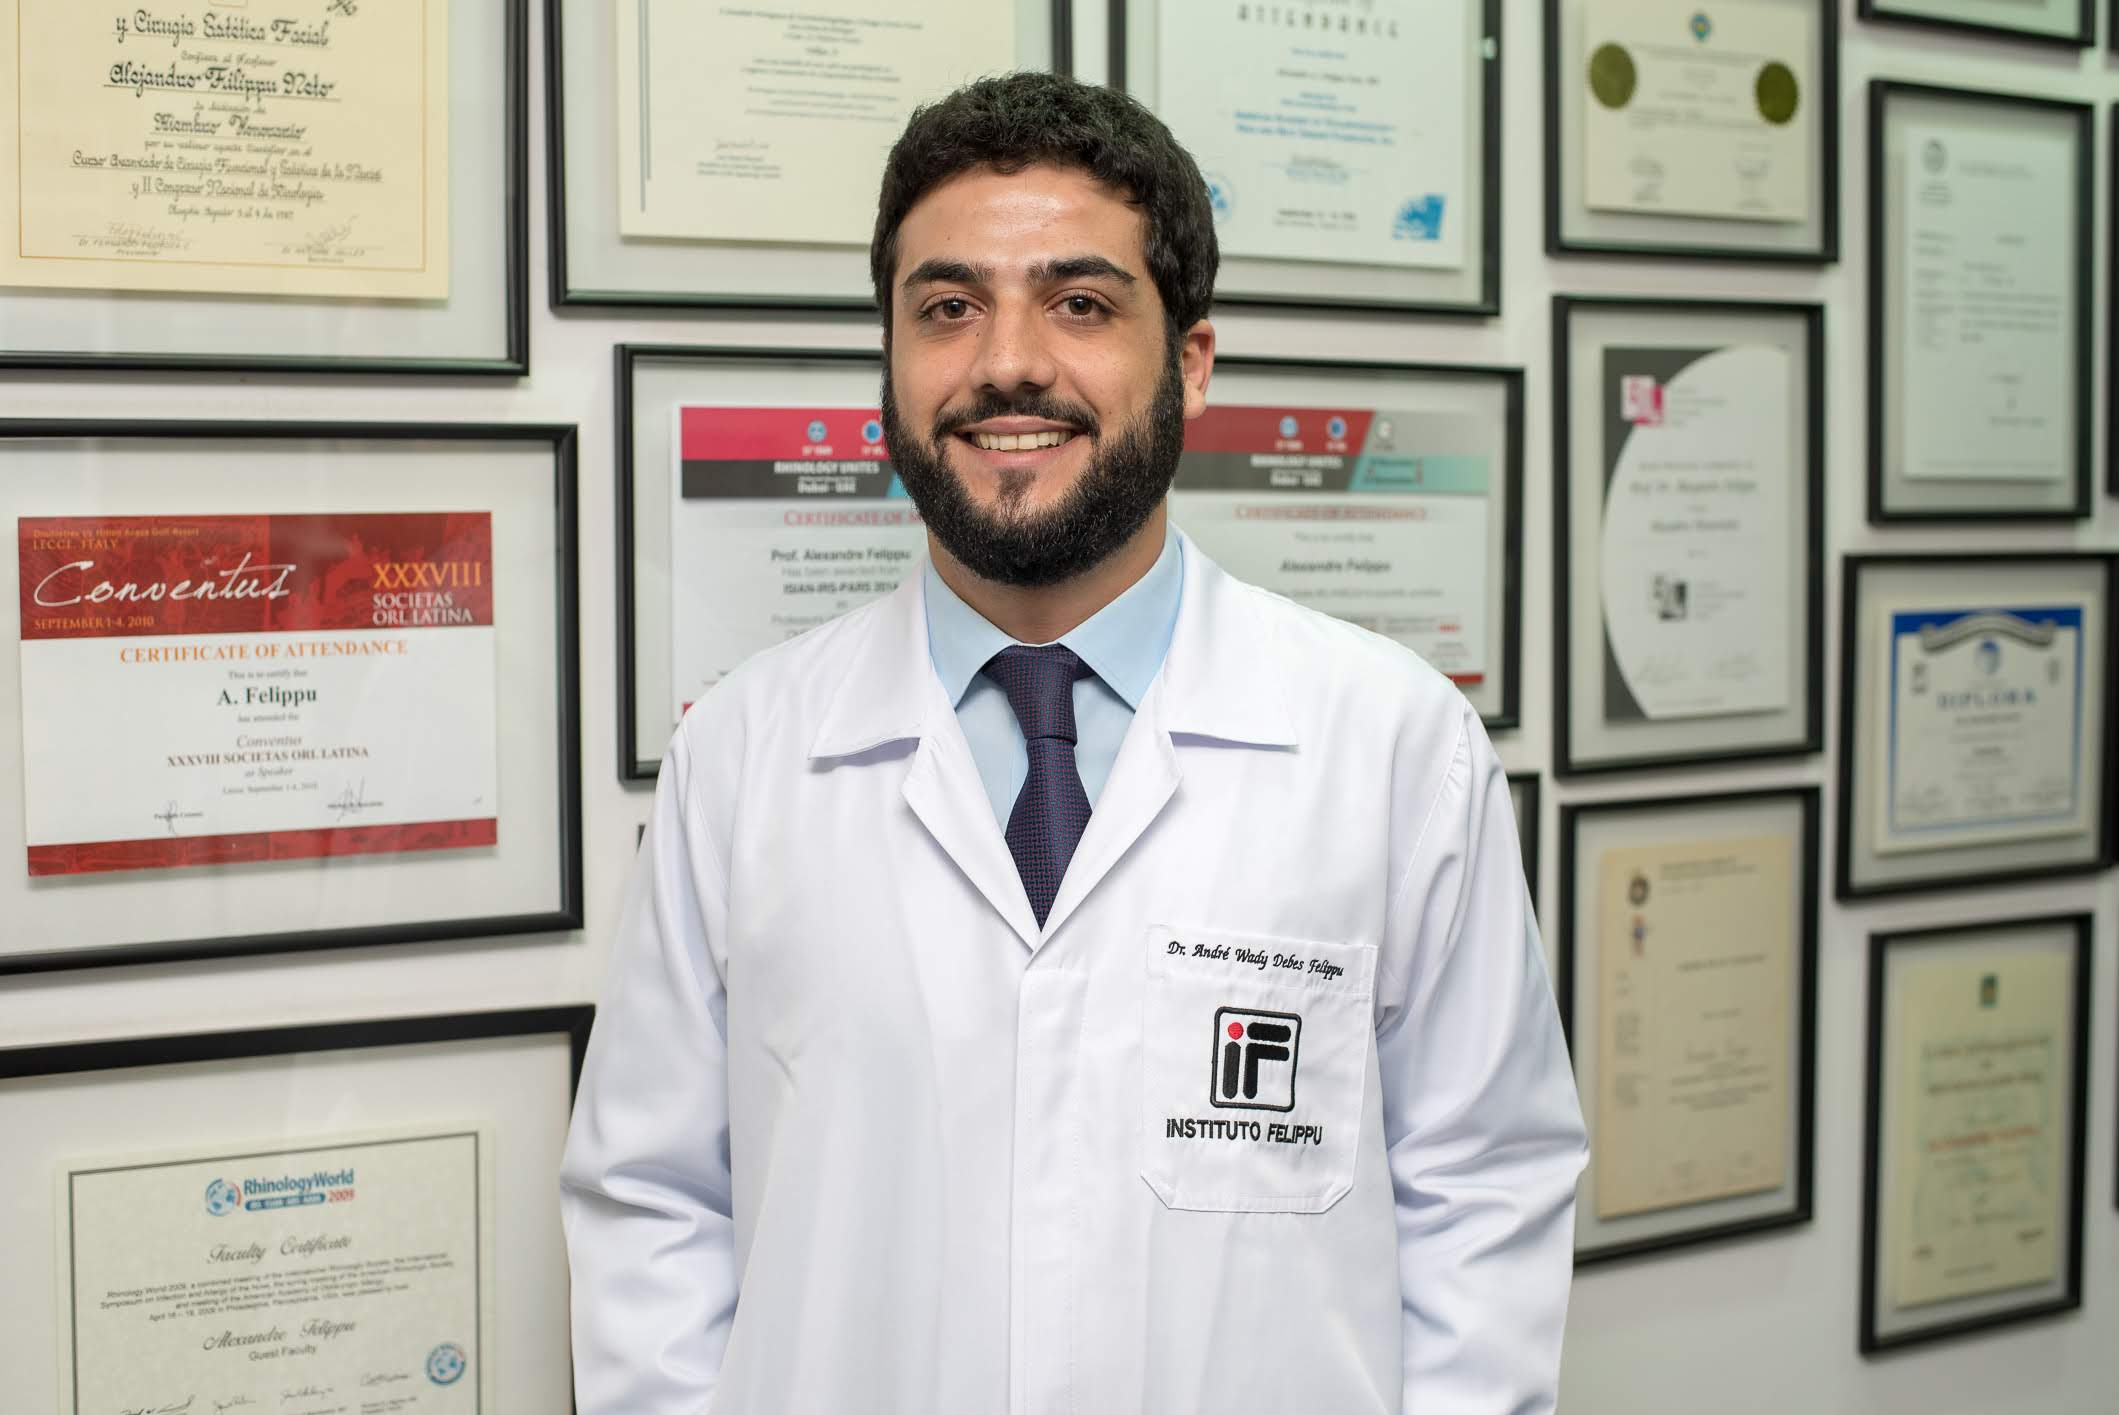 Dr. André Wady Debes Felippu